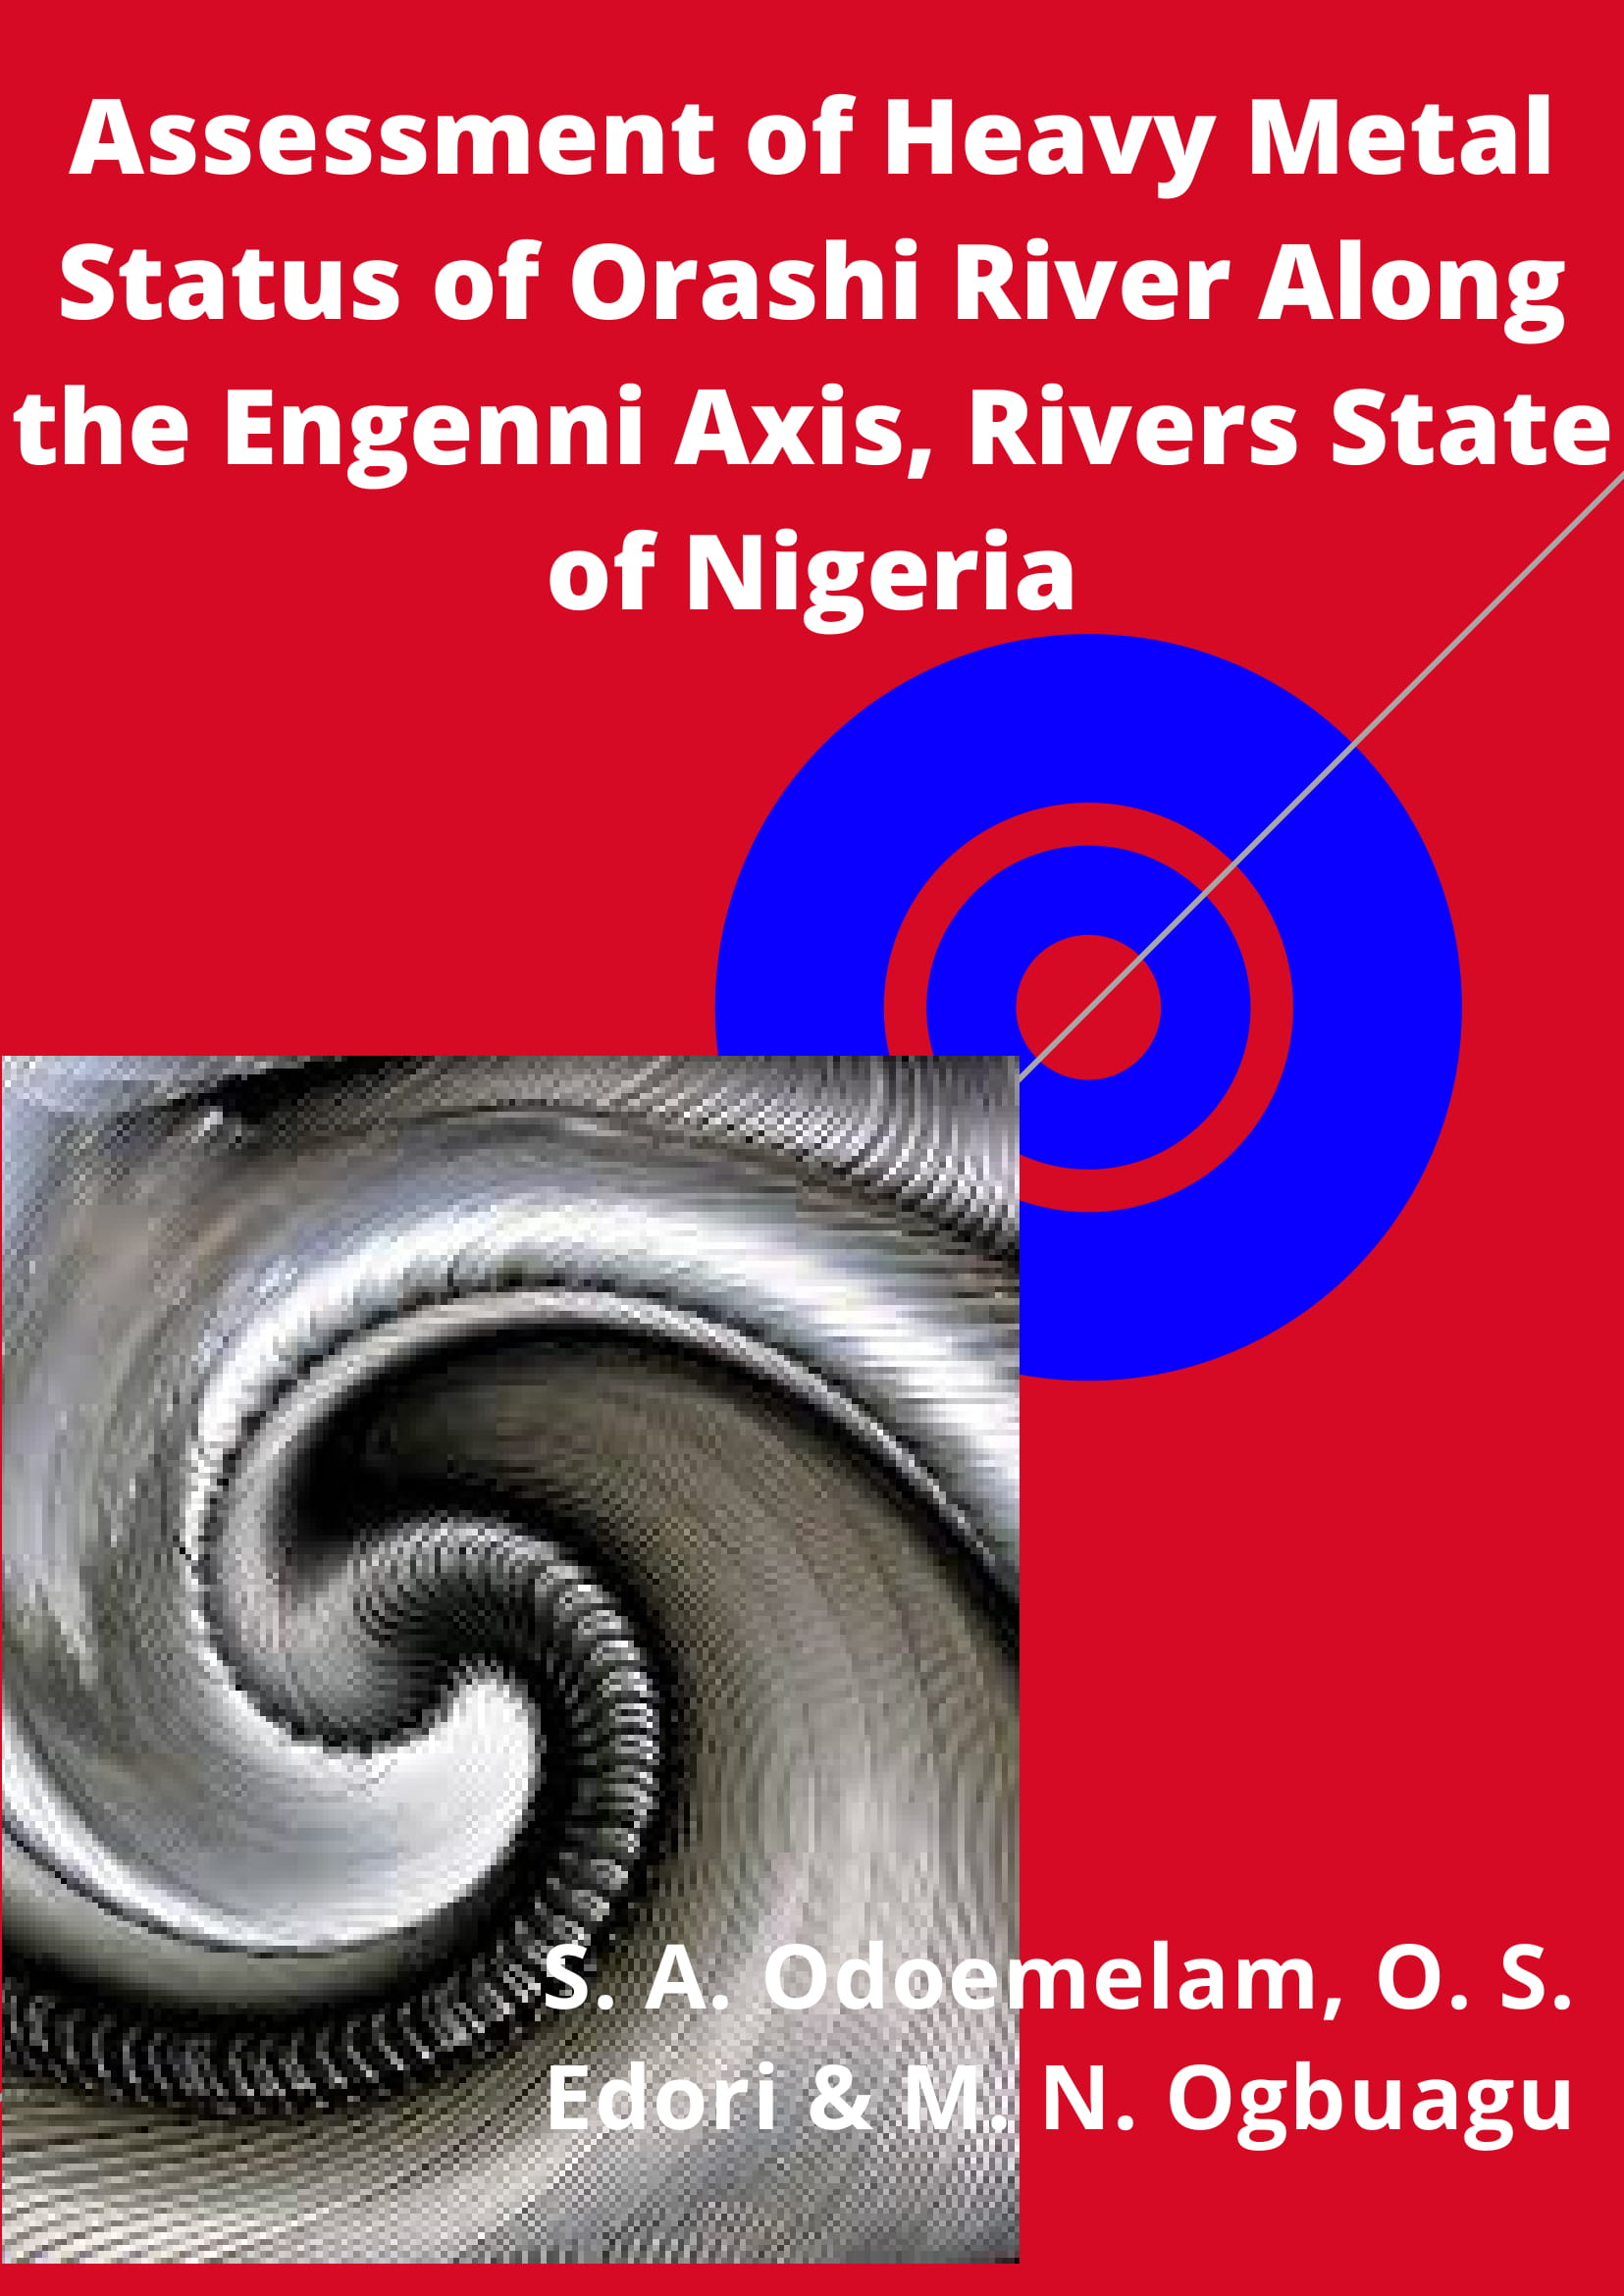 Assessment of Heavy Metal Status of Orashi River Along the Engenni Axis, Rivers State of Nigeria  image